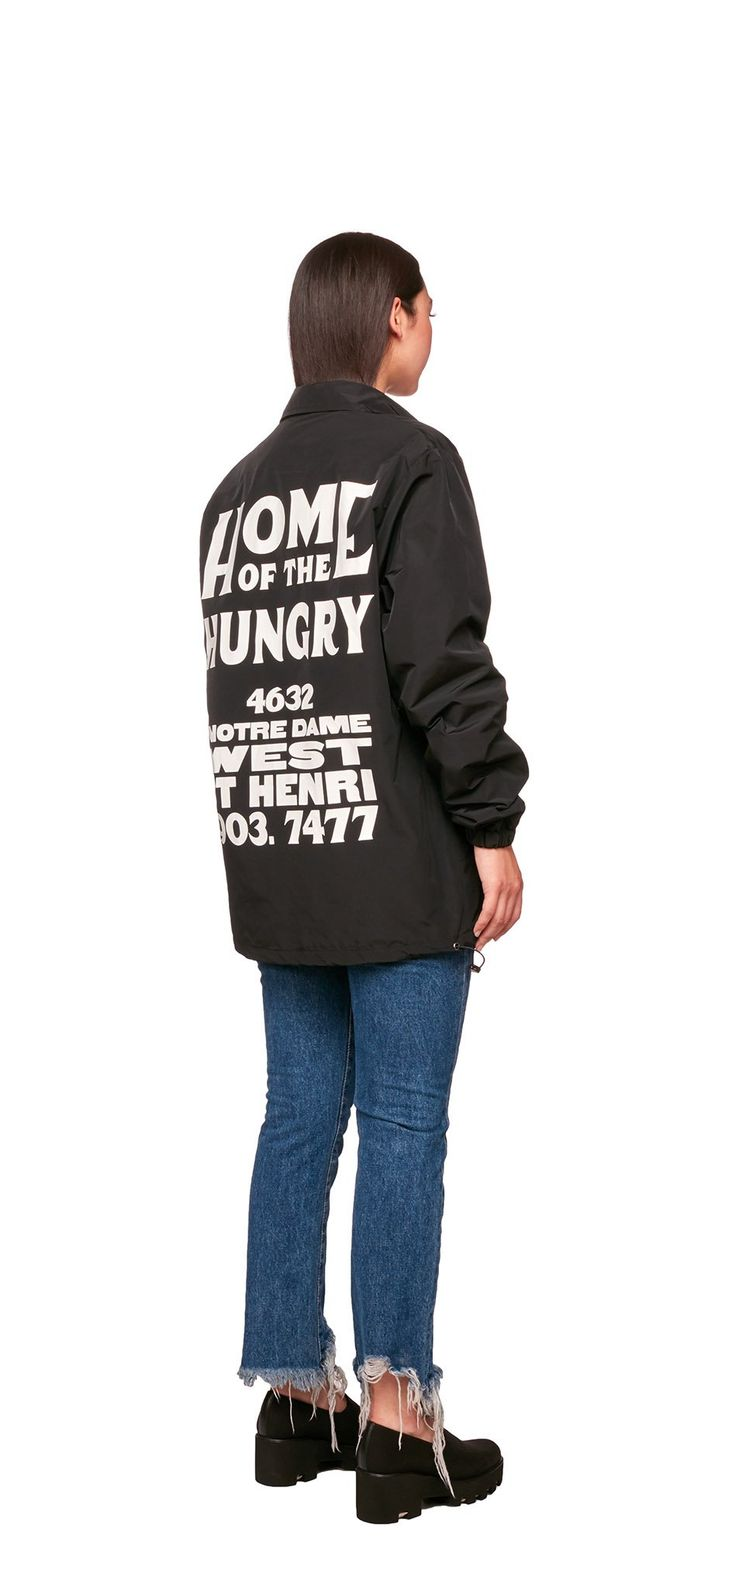 """Home Of The Hungry Team Jacket (Black) / Made of a lightweight nylon, this coach jacket features """"Home of the Hungry"""" artwork printed in white on back. #fw17"""